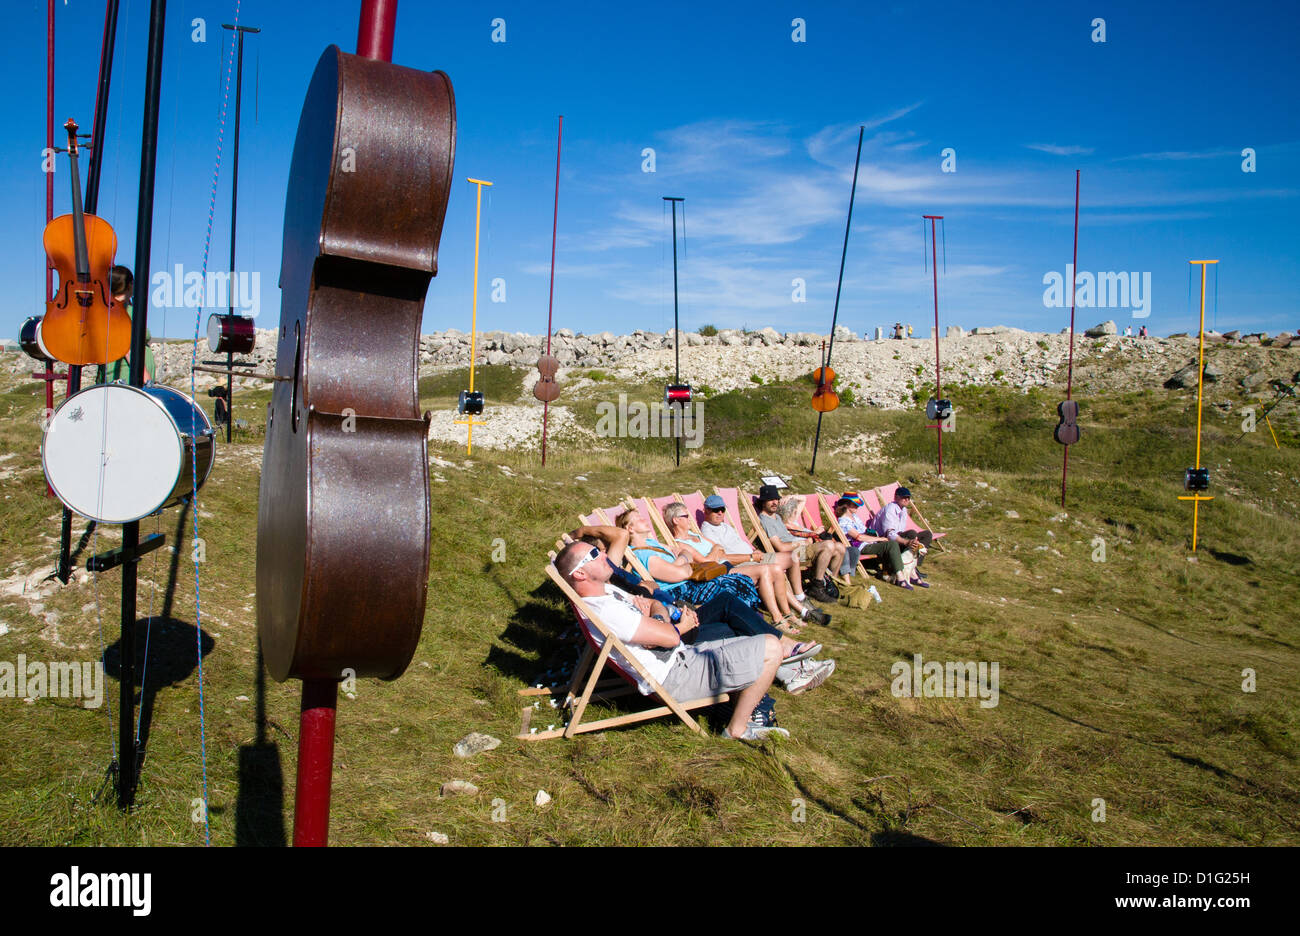 An audience in deck chairs listening to aeolian music from various instruments at Harmonic Fields on Portland Bill - Stock Image